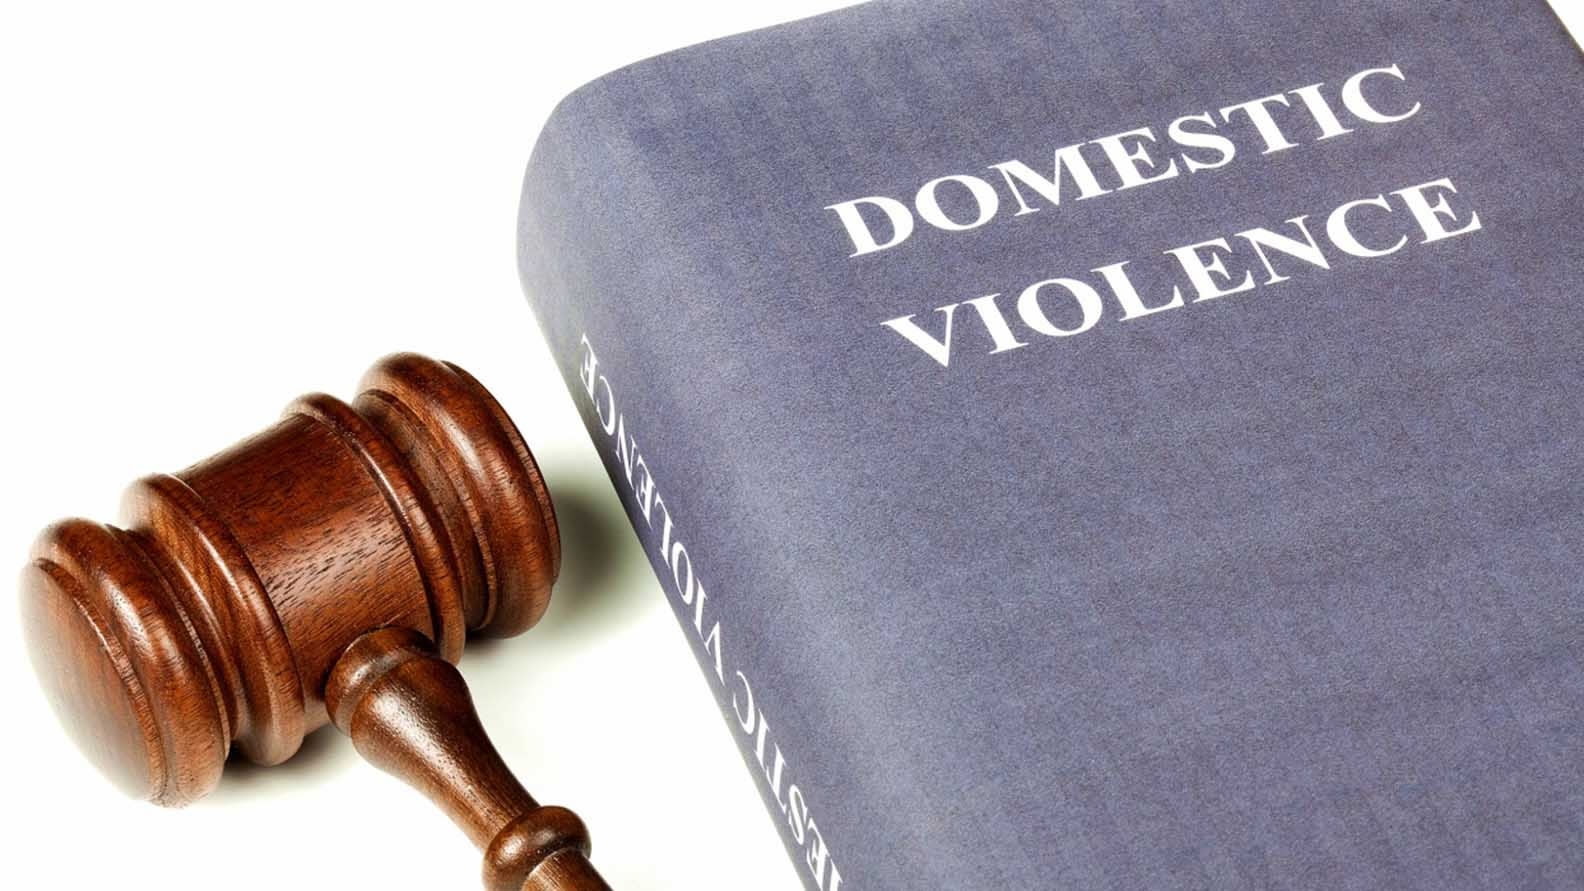 Domestic violence casts long shadow